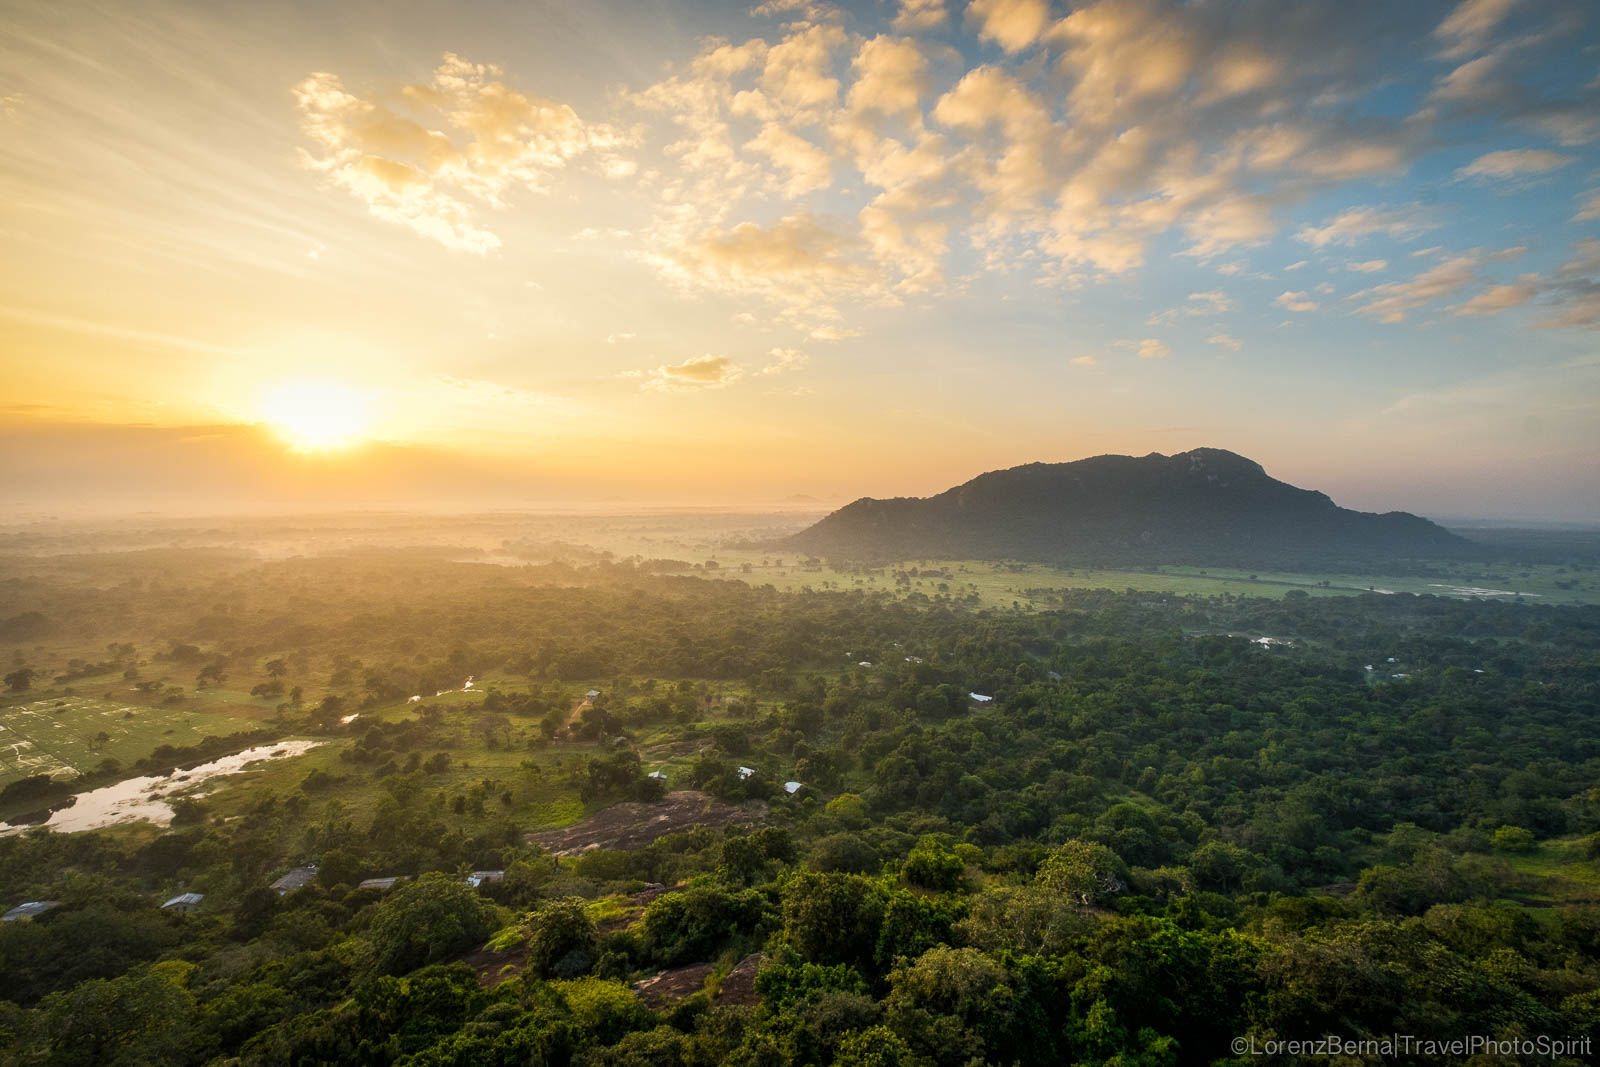 Sunrise over Mihintale, Sri Lanka.